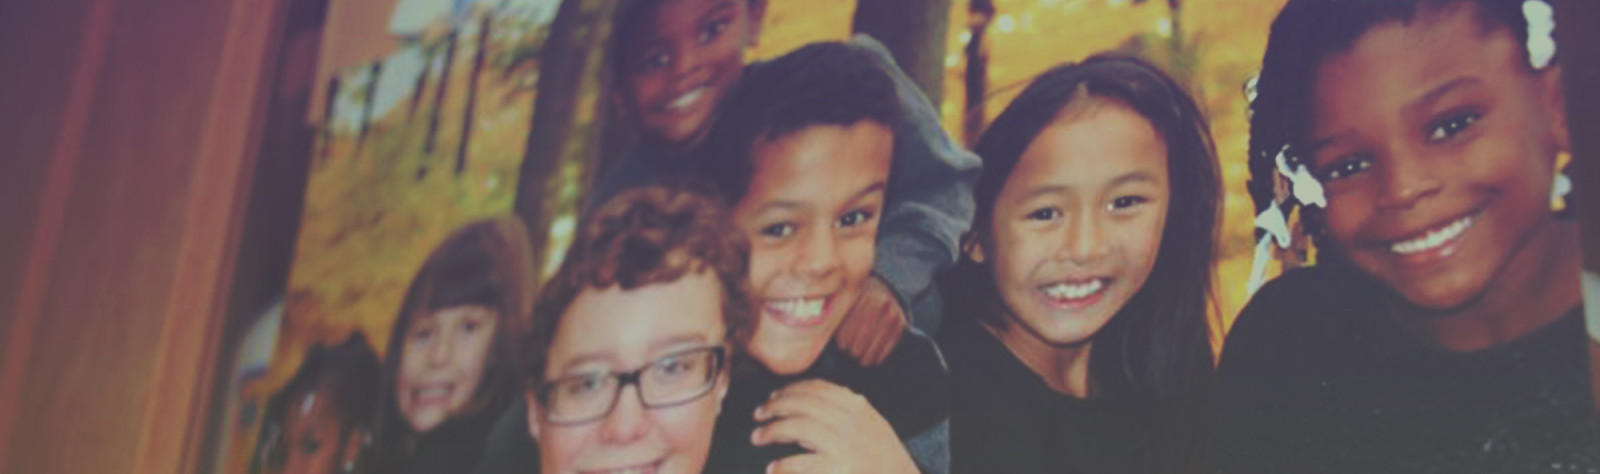 Catholic Charities Agency Adoptee Search Results, Adoption ...